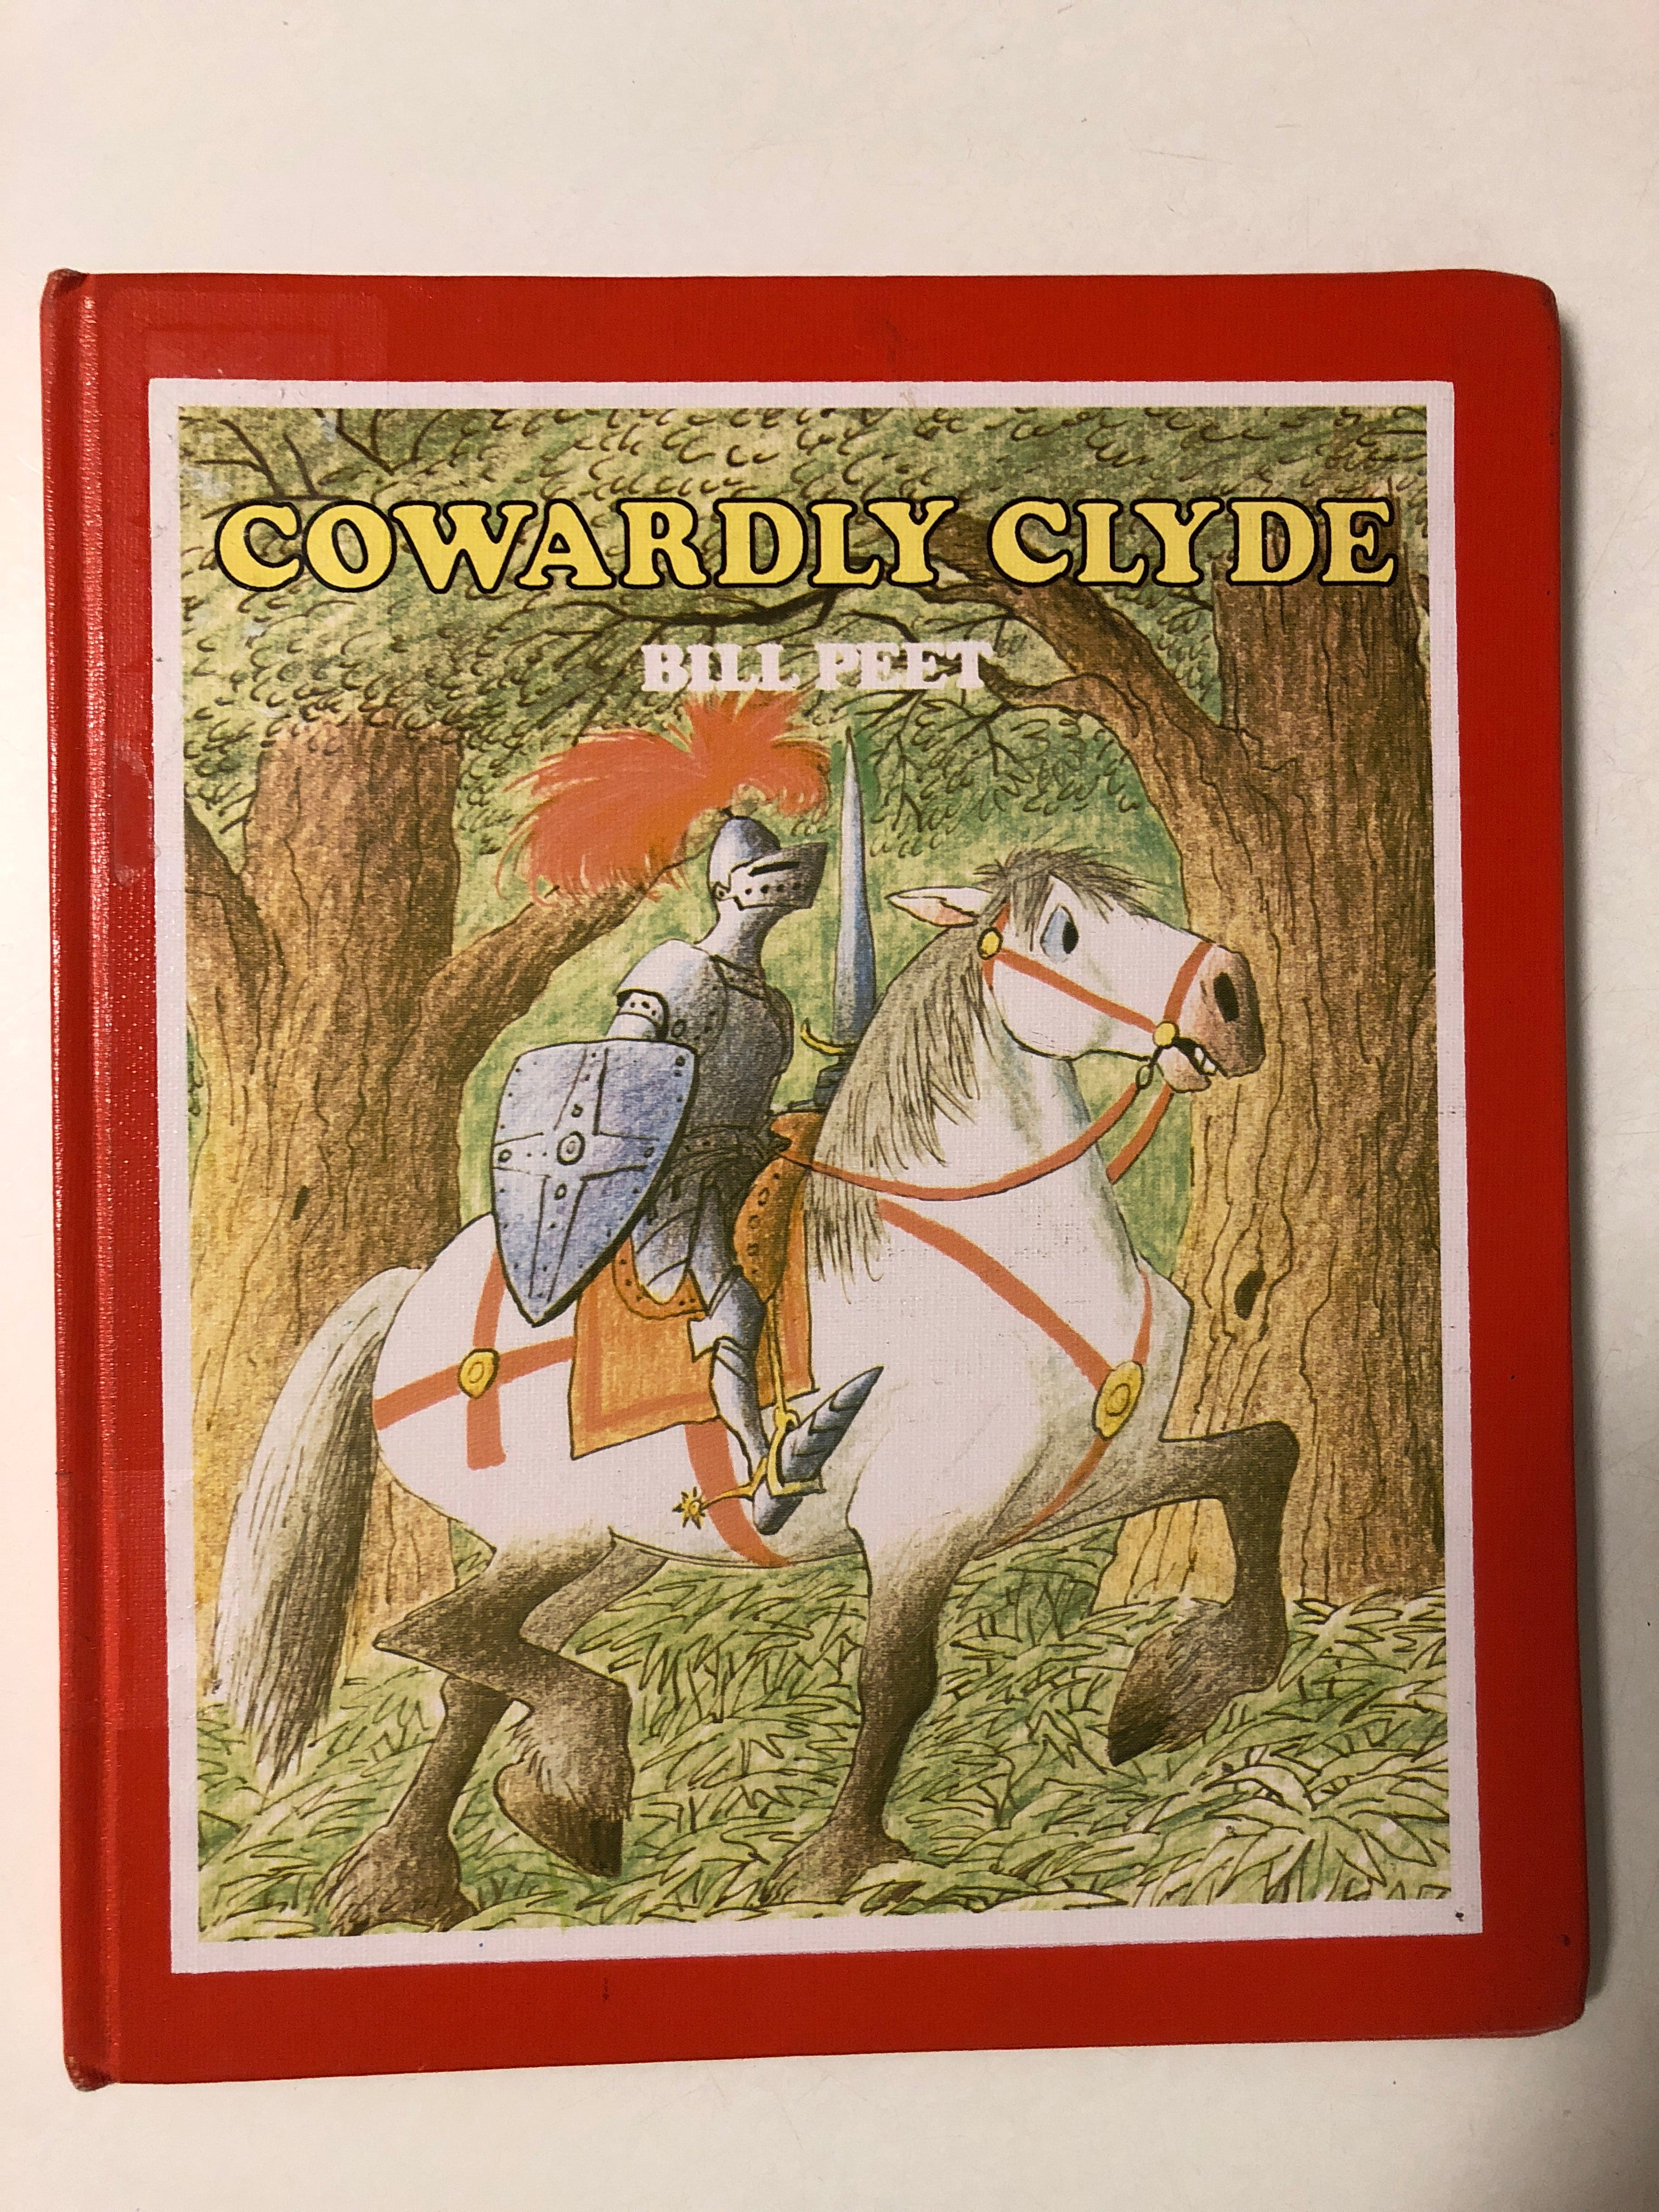 Cowardly Clyde - Slick Cat Books